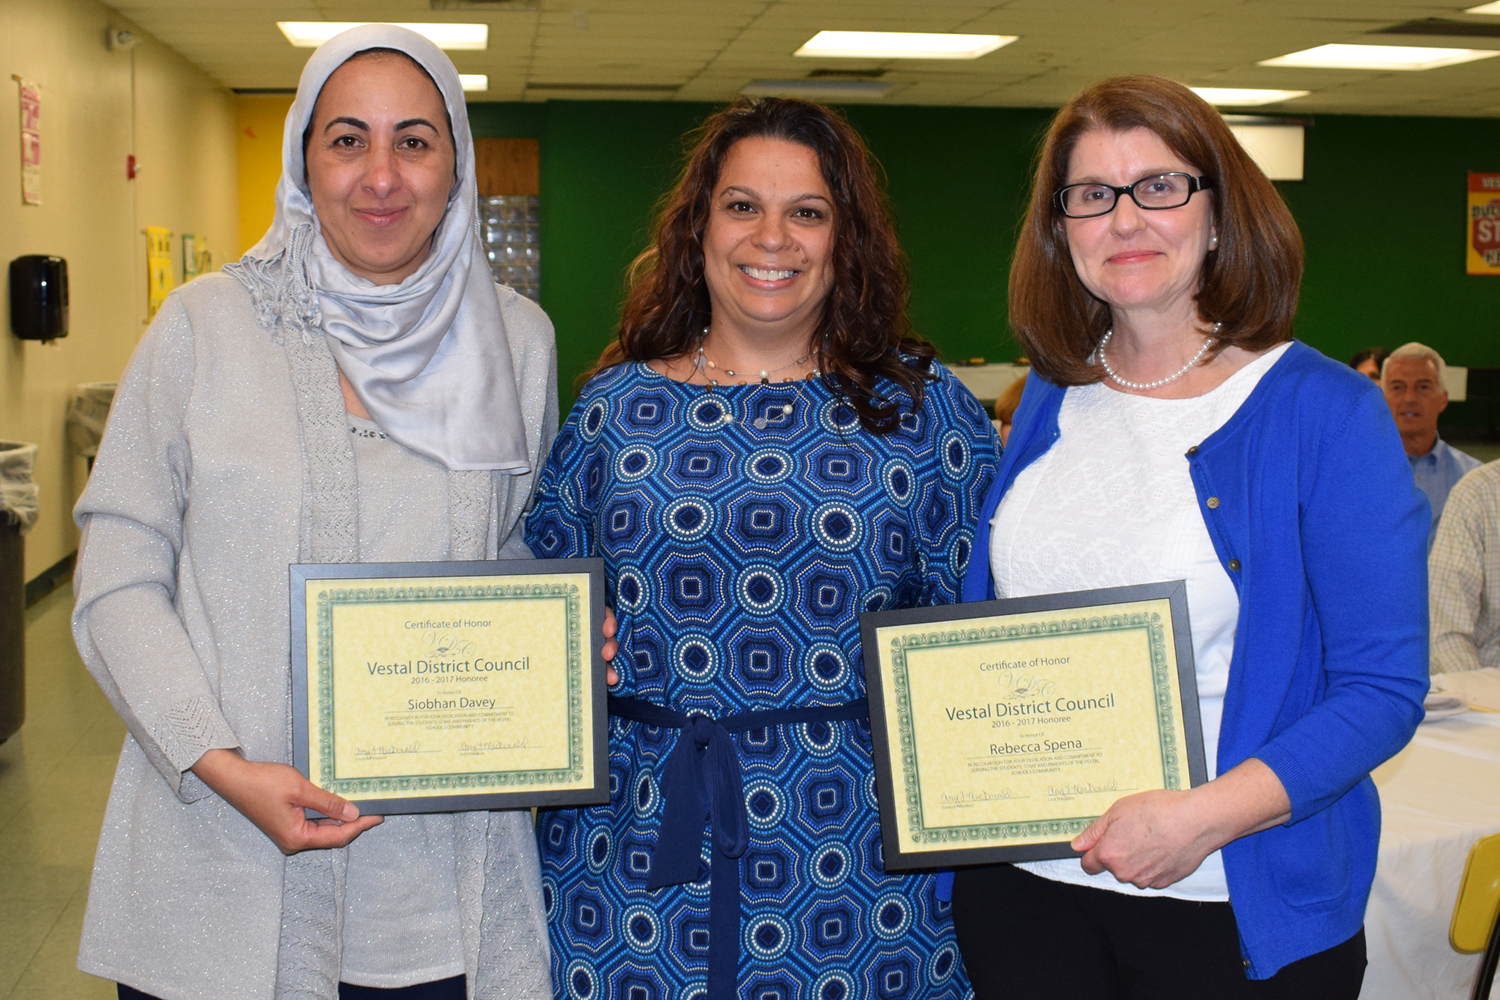 District Council representatives for the Vestal Middle School PTO, Khadija El Ghissassi and Eleni Fo